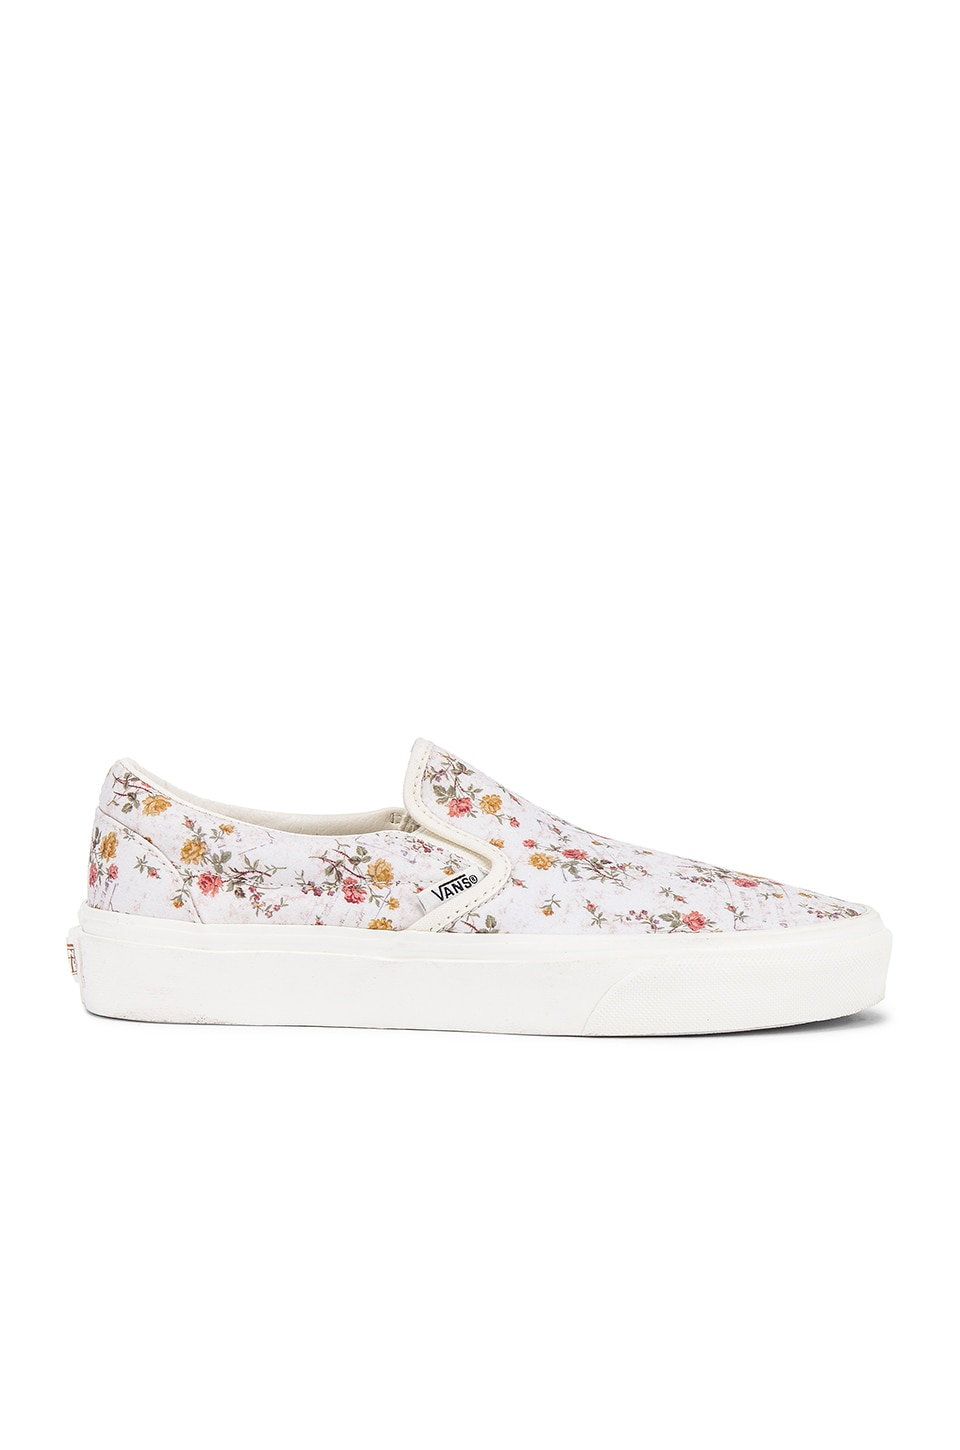 Vans Classic Slip-On in Floral & Marshmallow